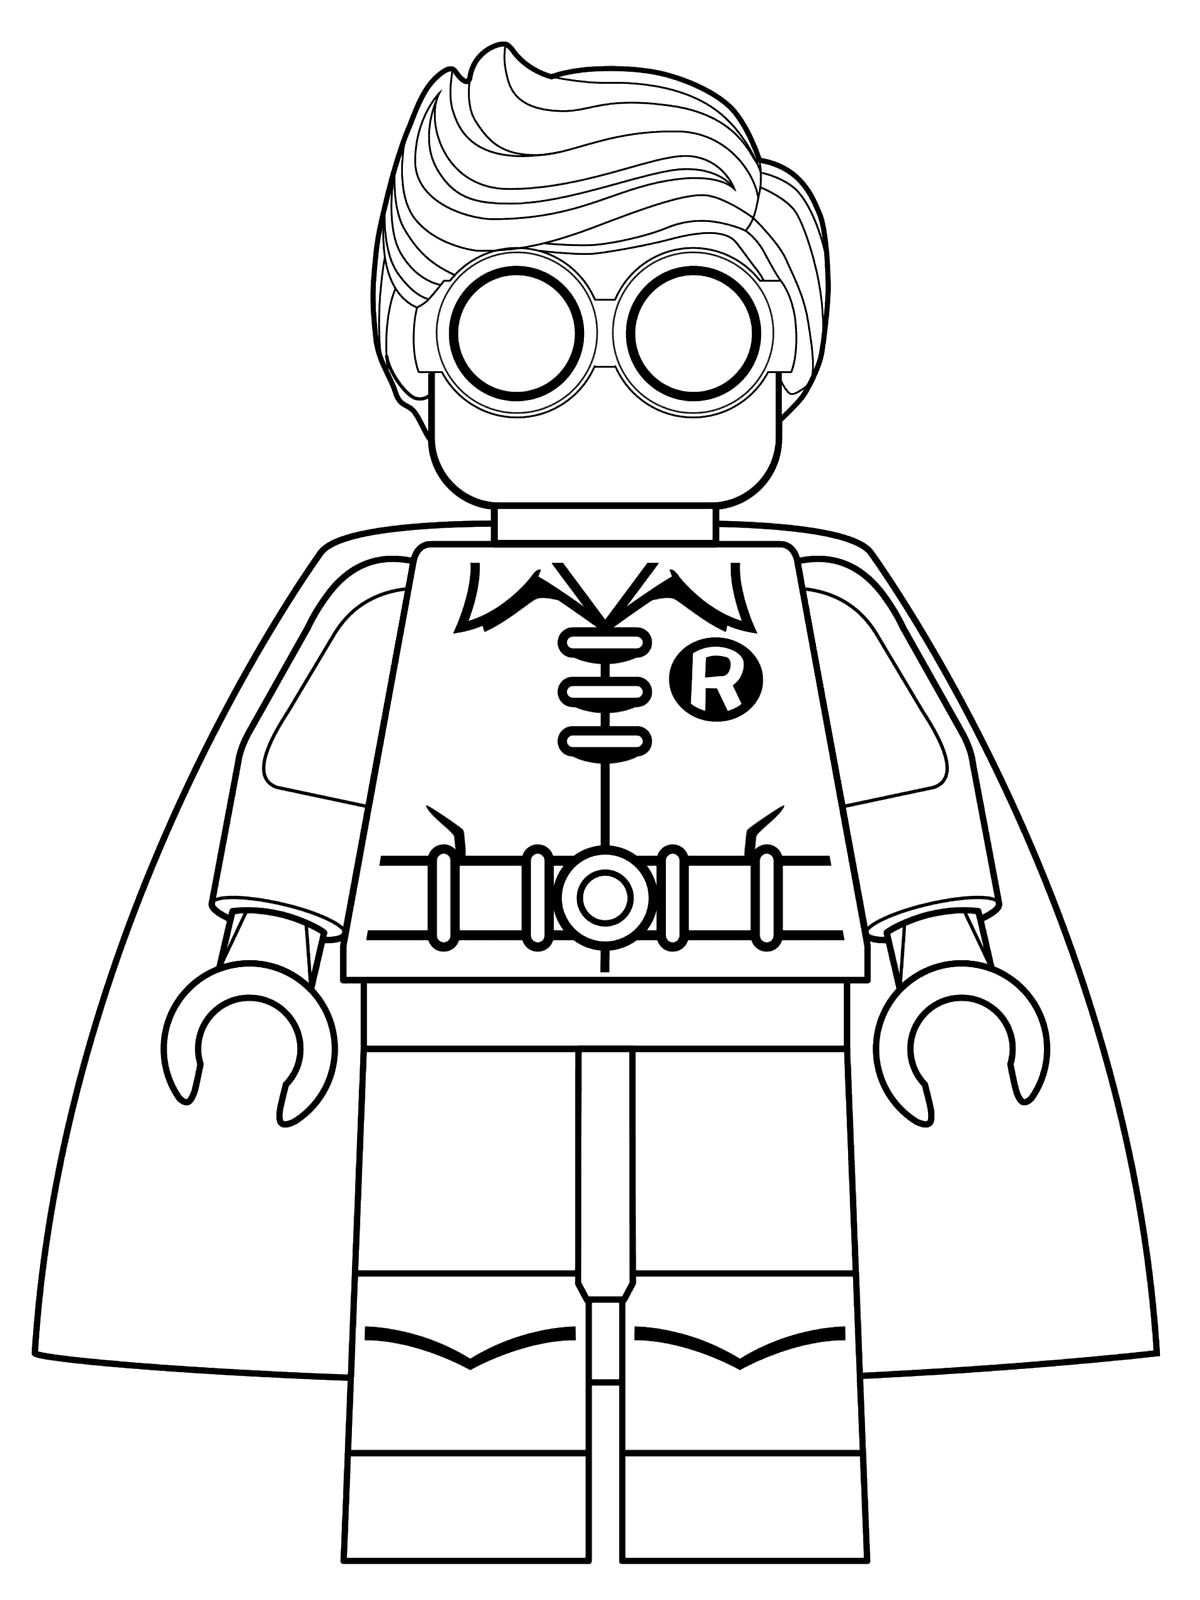 You Can Downlaod And Print These Lego Batman Coloring Pages